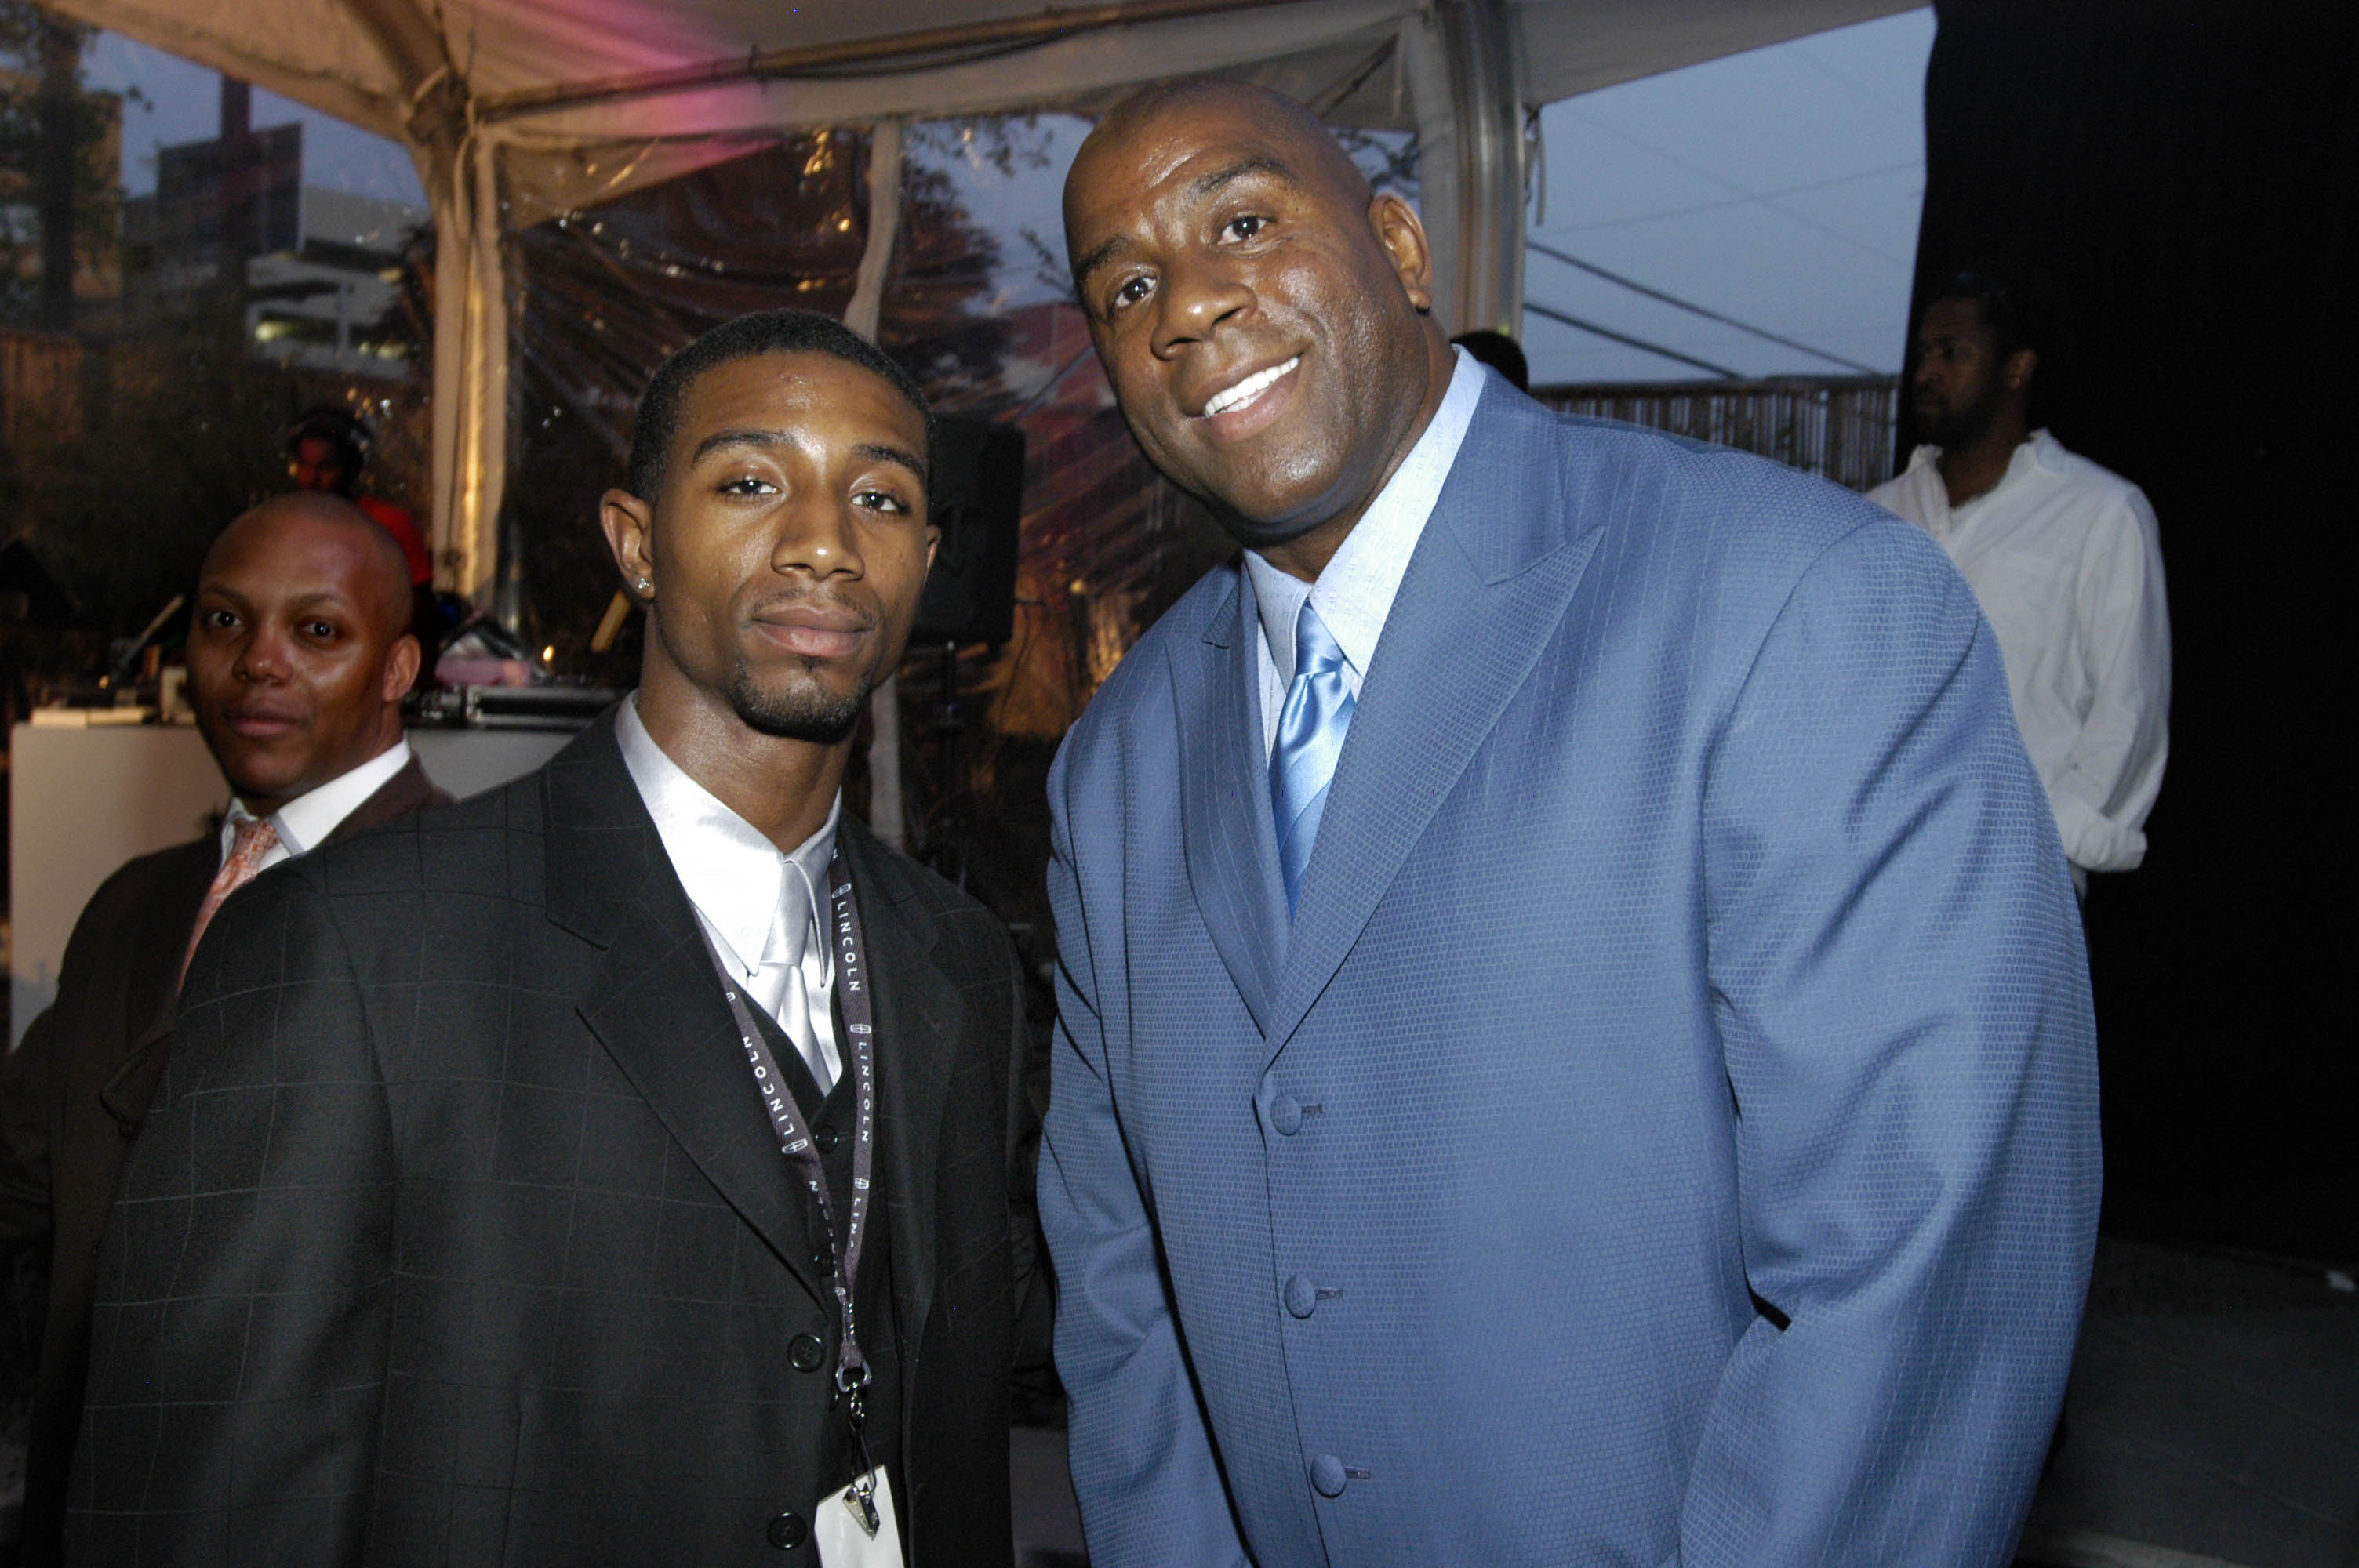 """Andre Johnson and Earvin """"Magic"""" Johnson during Lincoln Luxury Event with Earvin """"Magic"""" Johnson and New Edition at Compound in Atlanta, Georgia   Photo: GettyImages"""